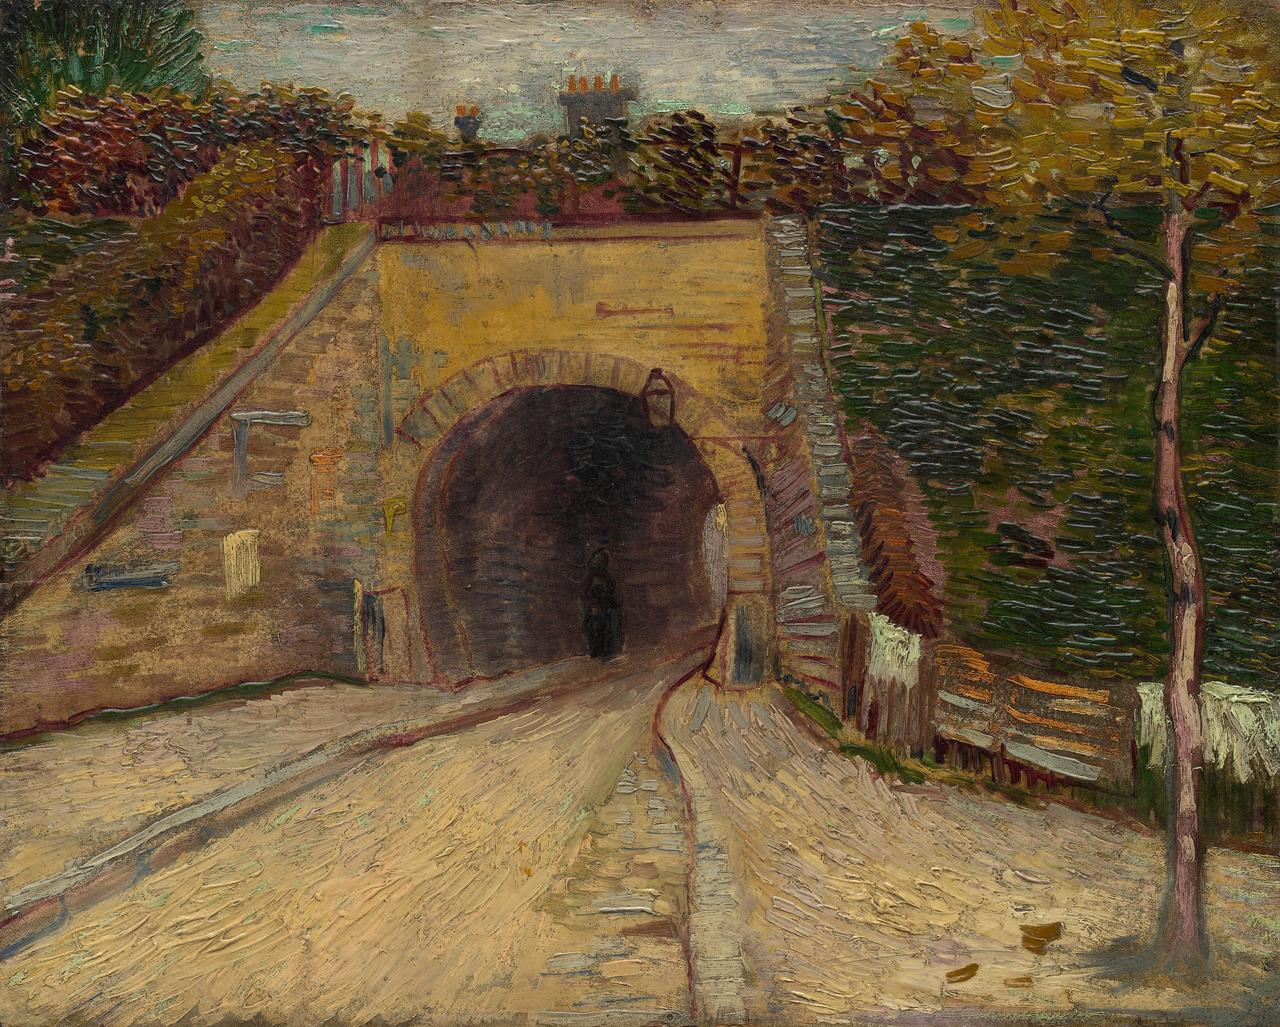 guggenheim-art: